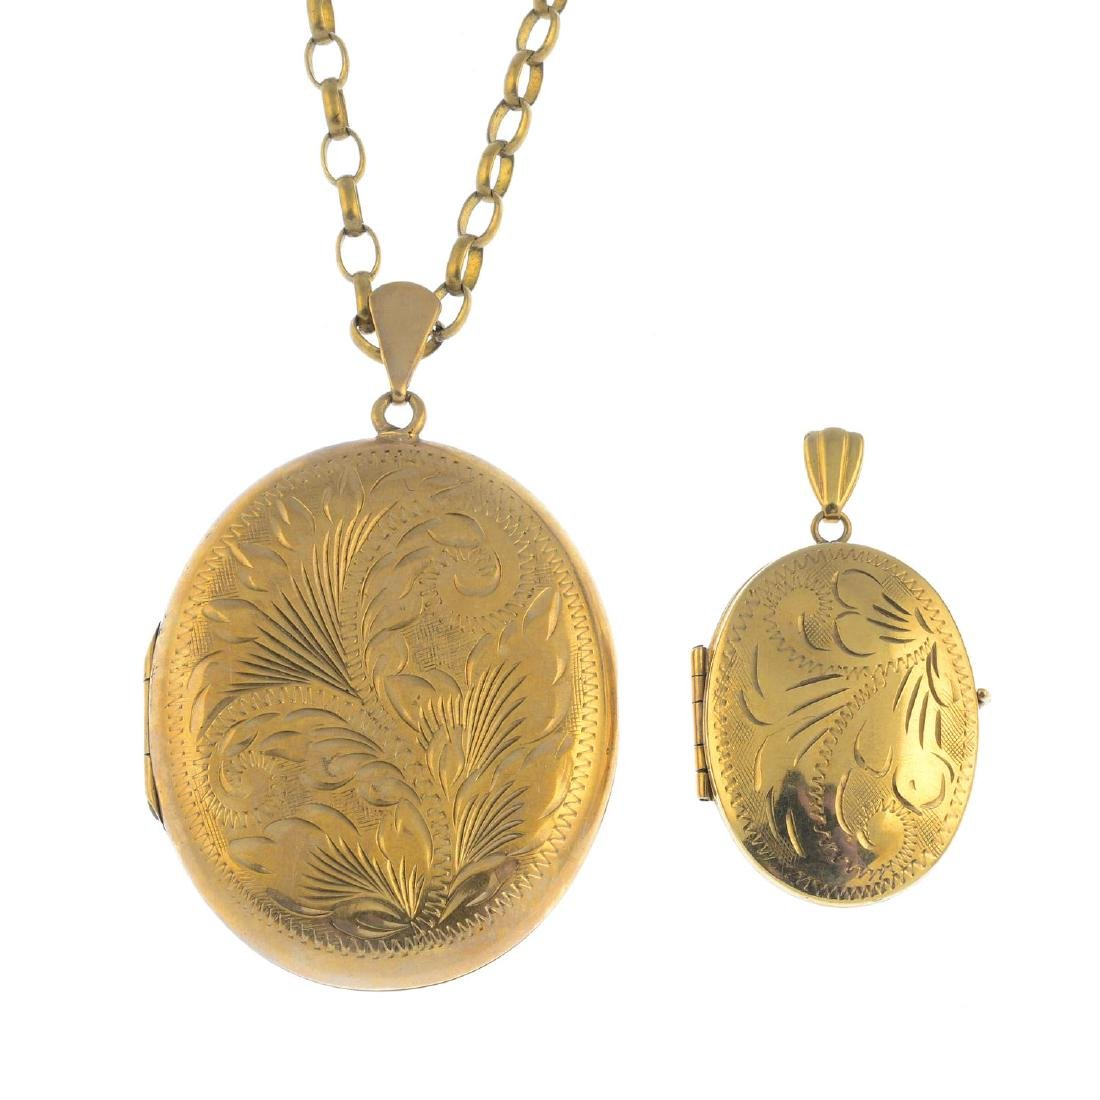 (52476) Two 9ct gold lockets. Both of oval outline,